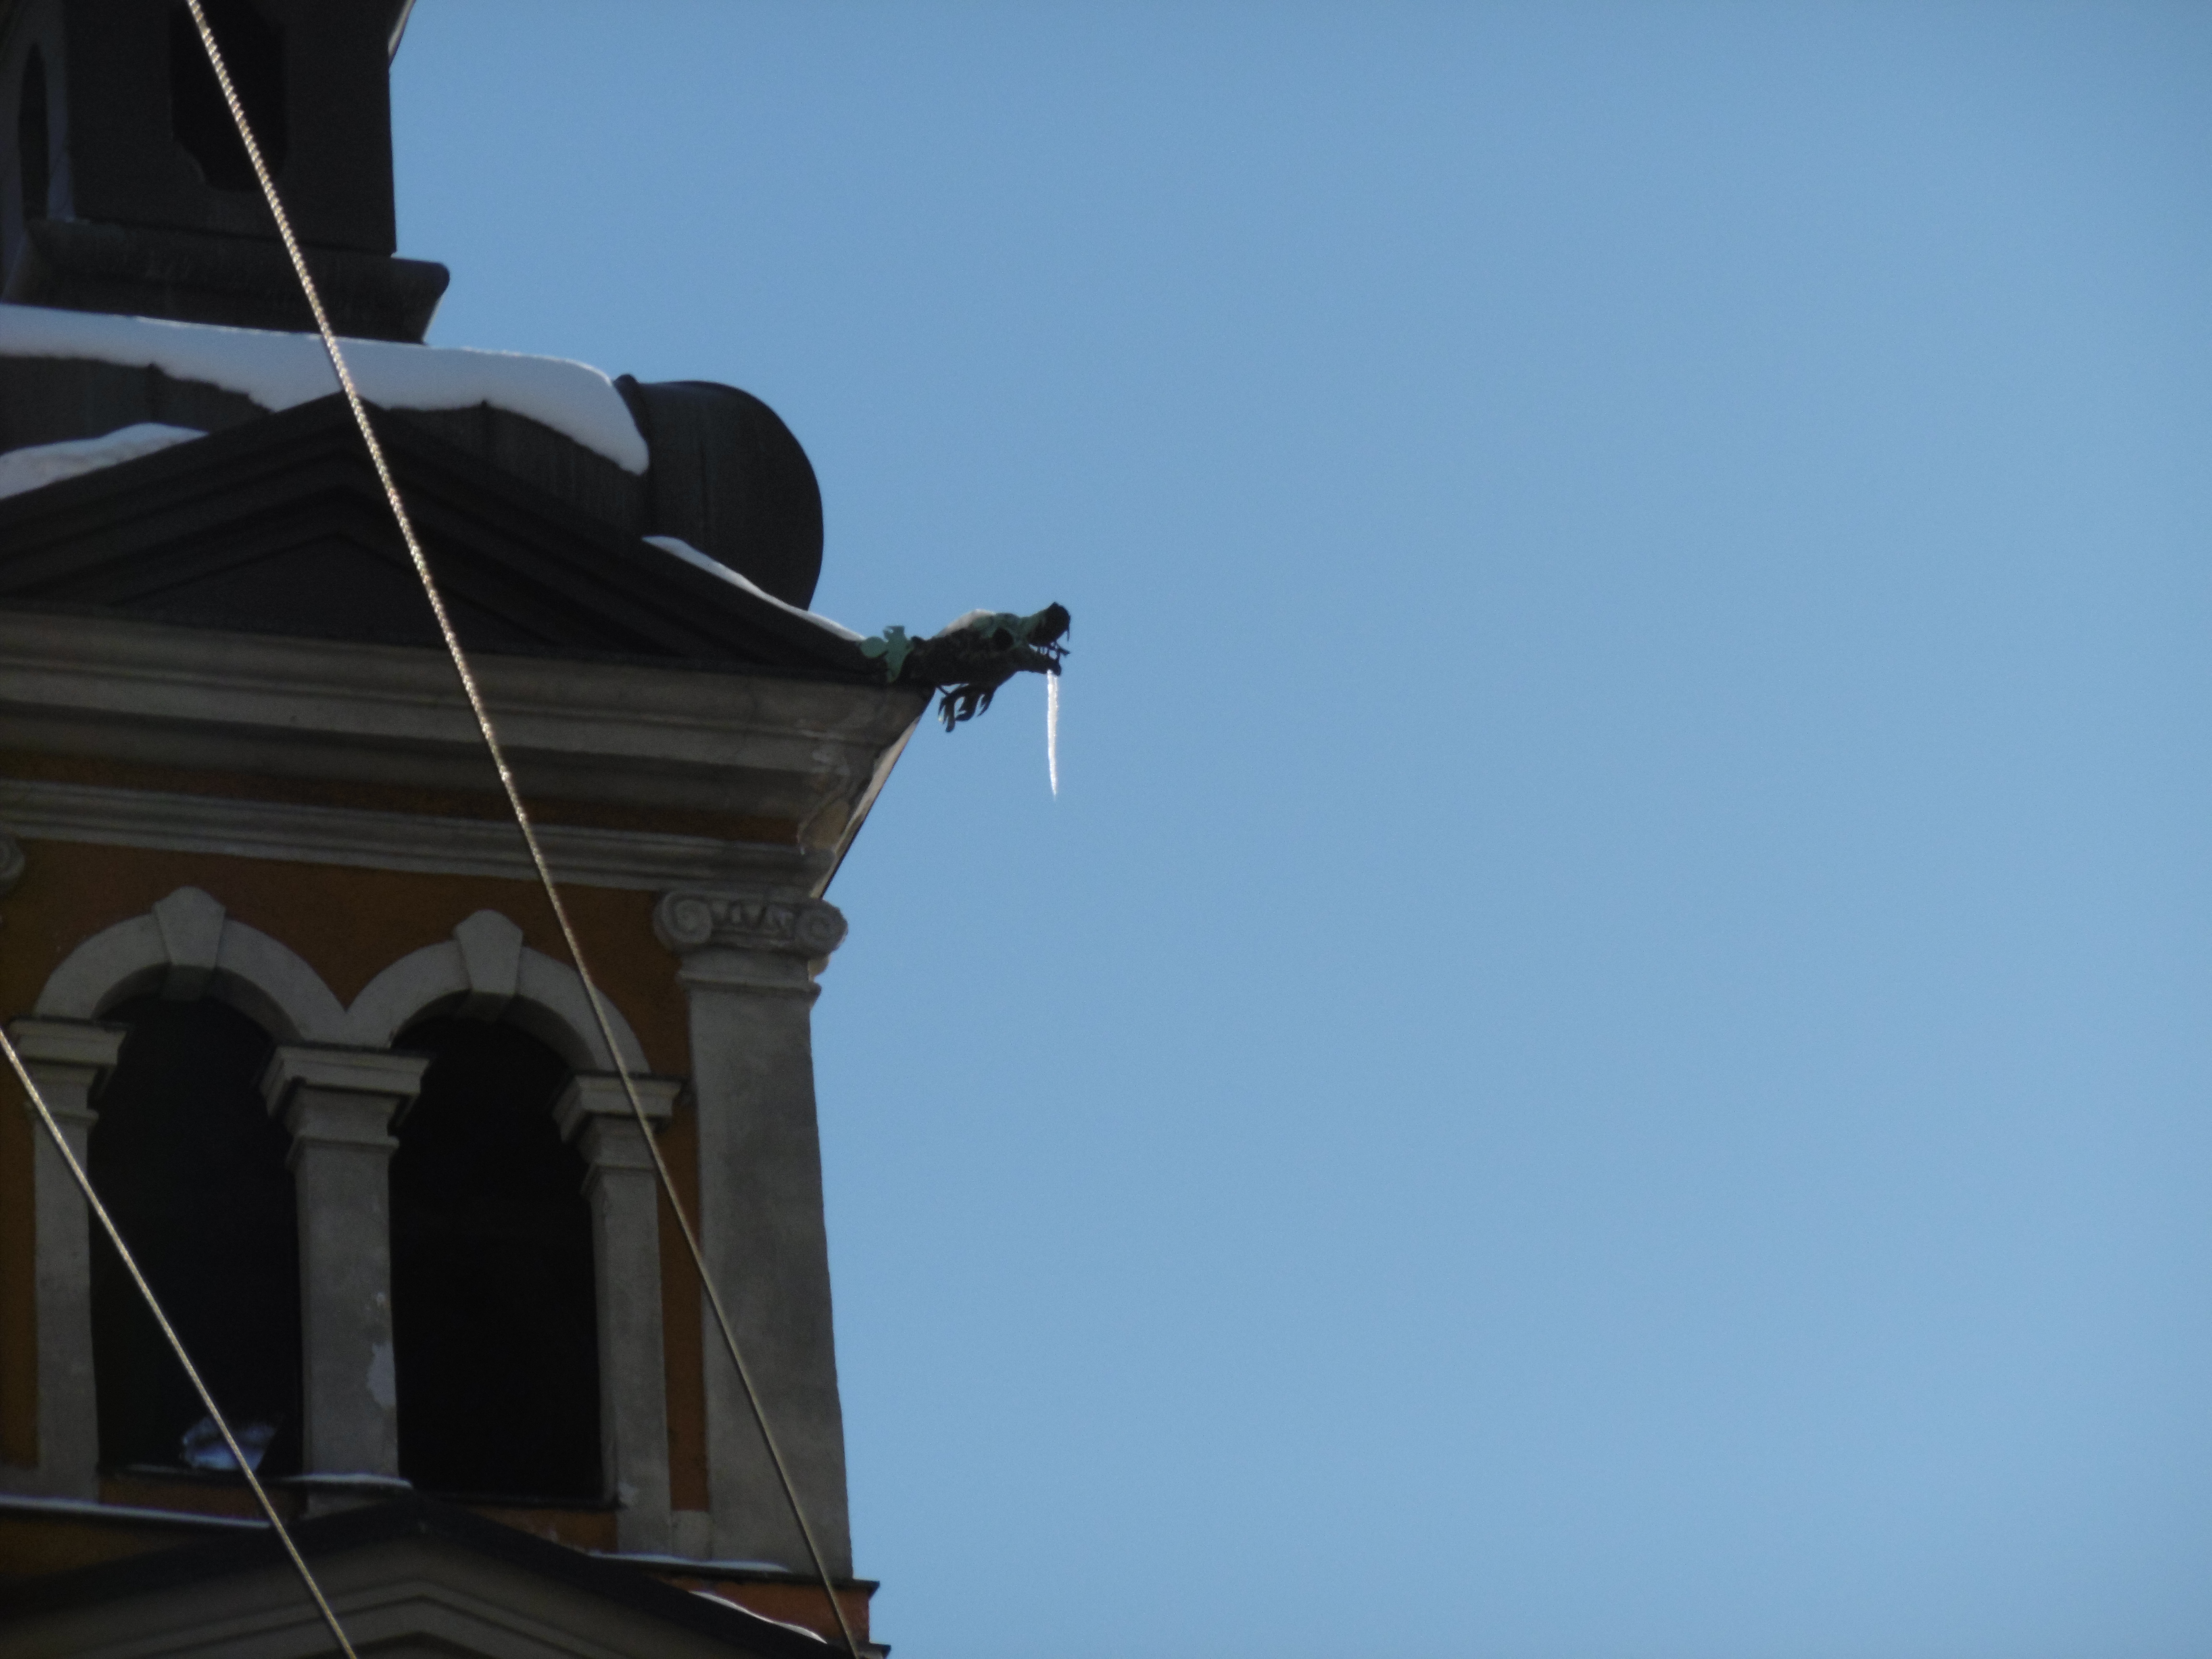 A copper rainspout with an icicle hanging from its mouth